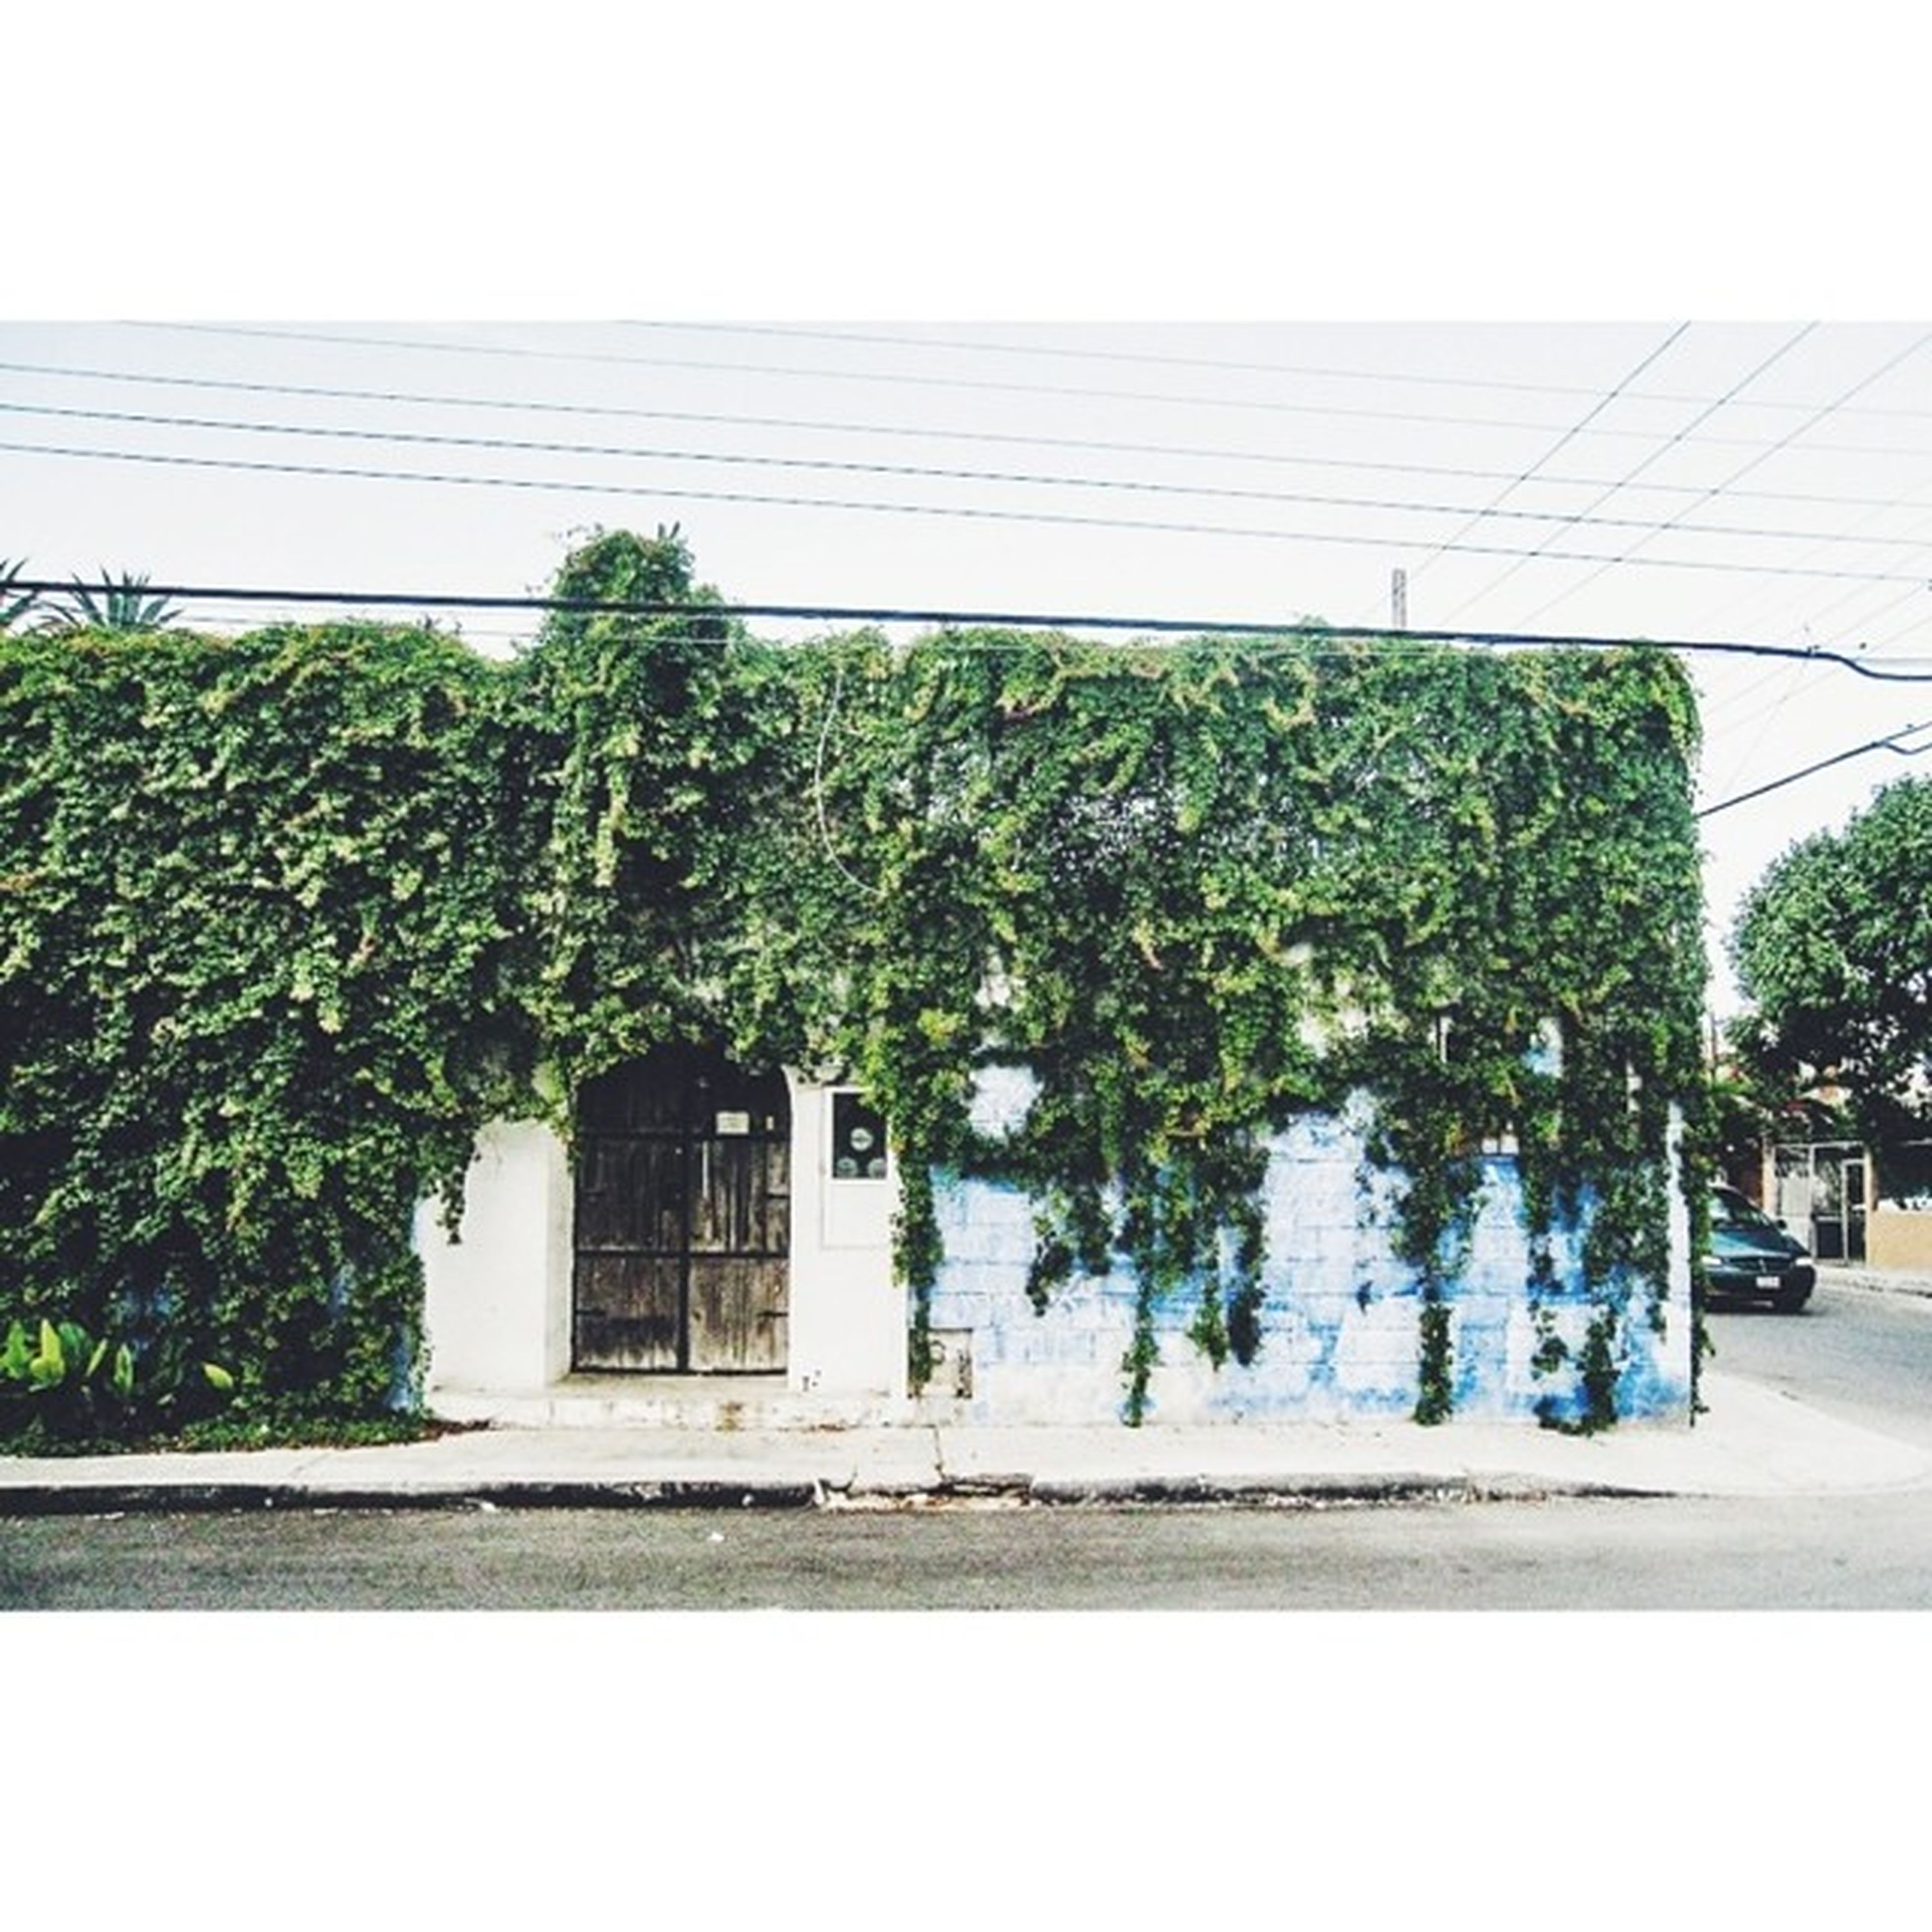 building exterior, built structure, tree, architecture, plant, growth, clear sky, potted plant, house, day, sunlight, street, green color, outdoors, no people, city, nature, sidewalk, sky, road